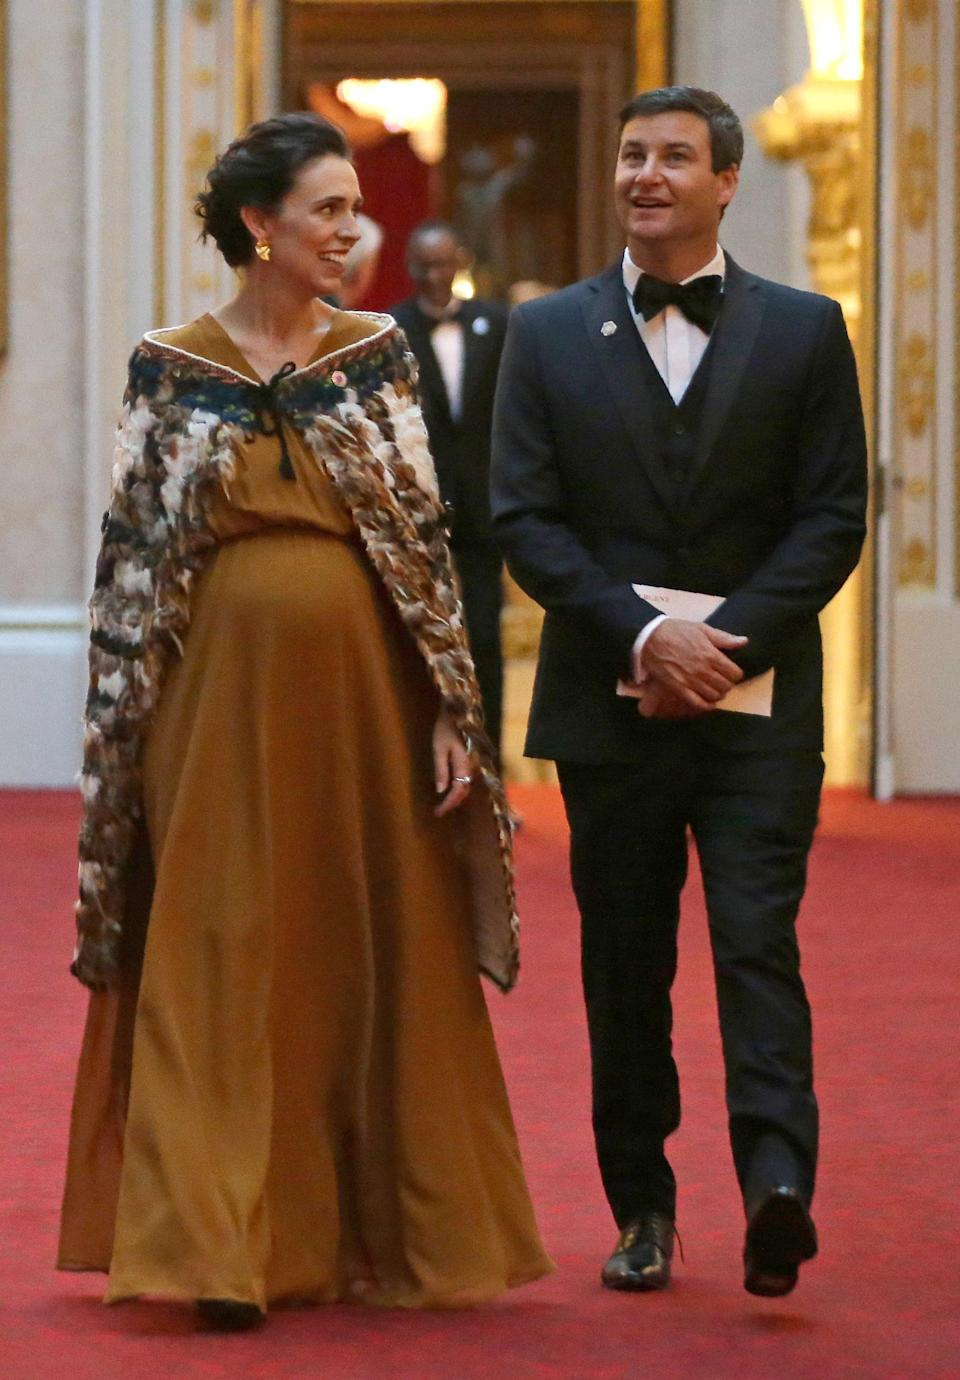 New Zealand's Prime Minister Jacinda Ardern arrives at Buckingham Palace in a traditional Māori cloak. (Photo: Getty Images)